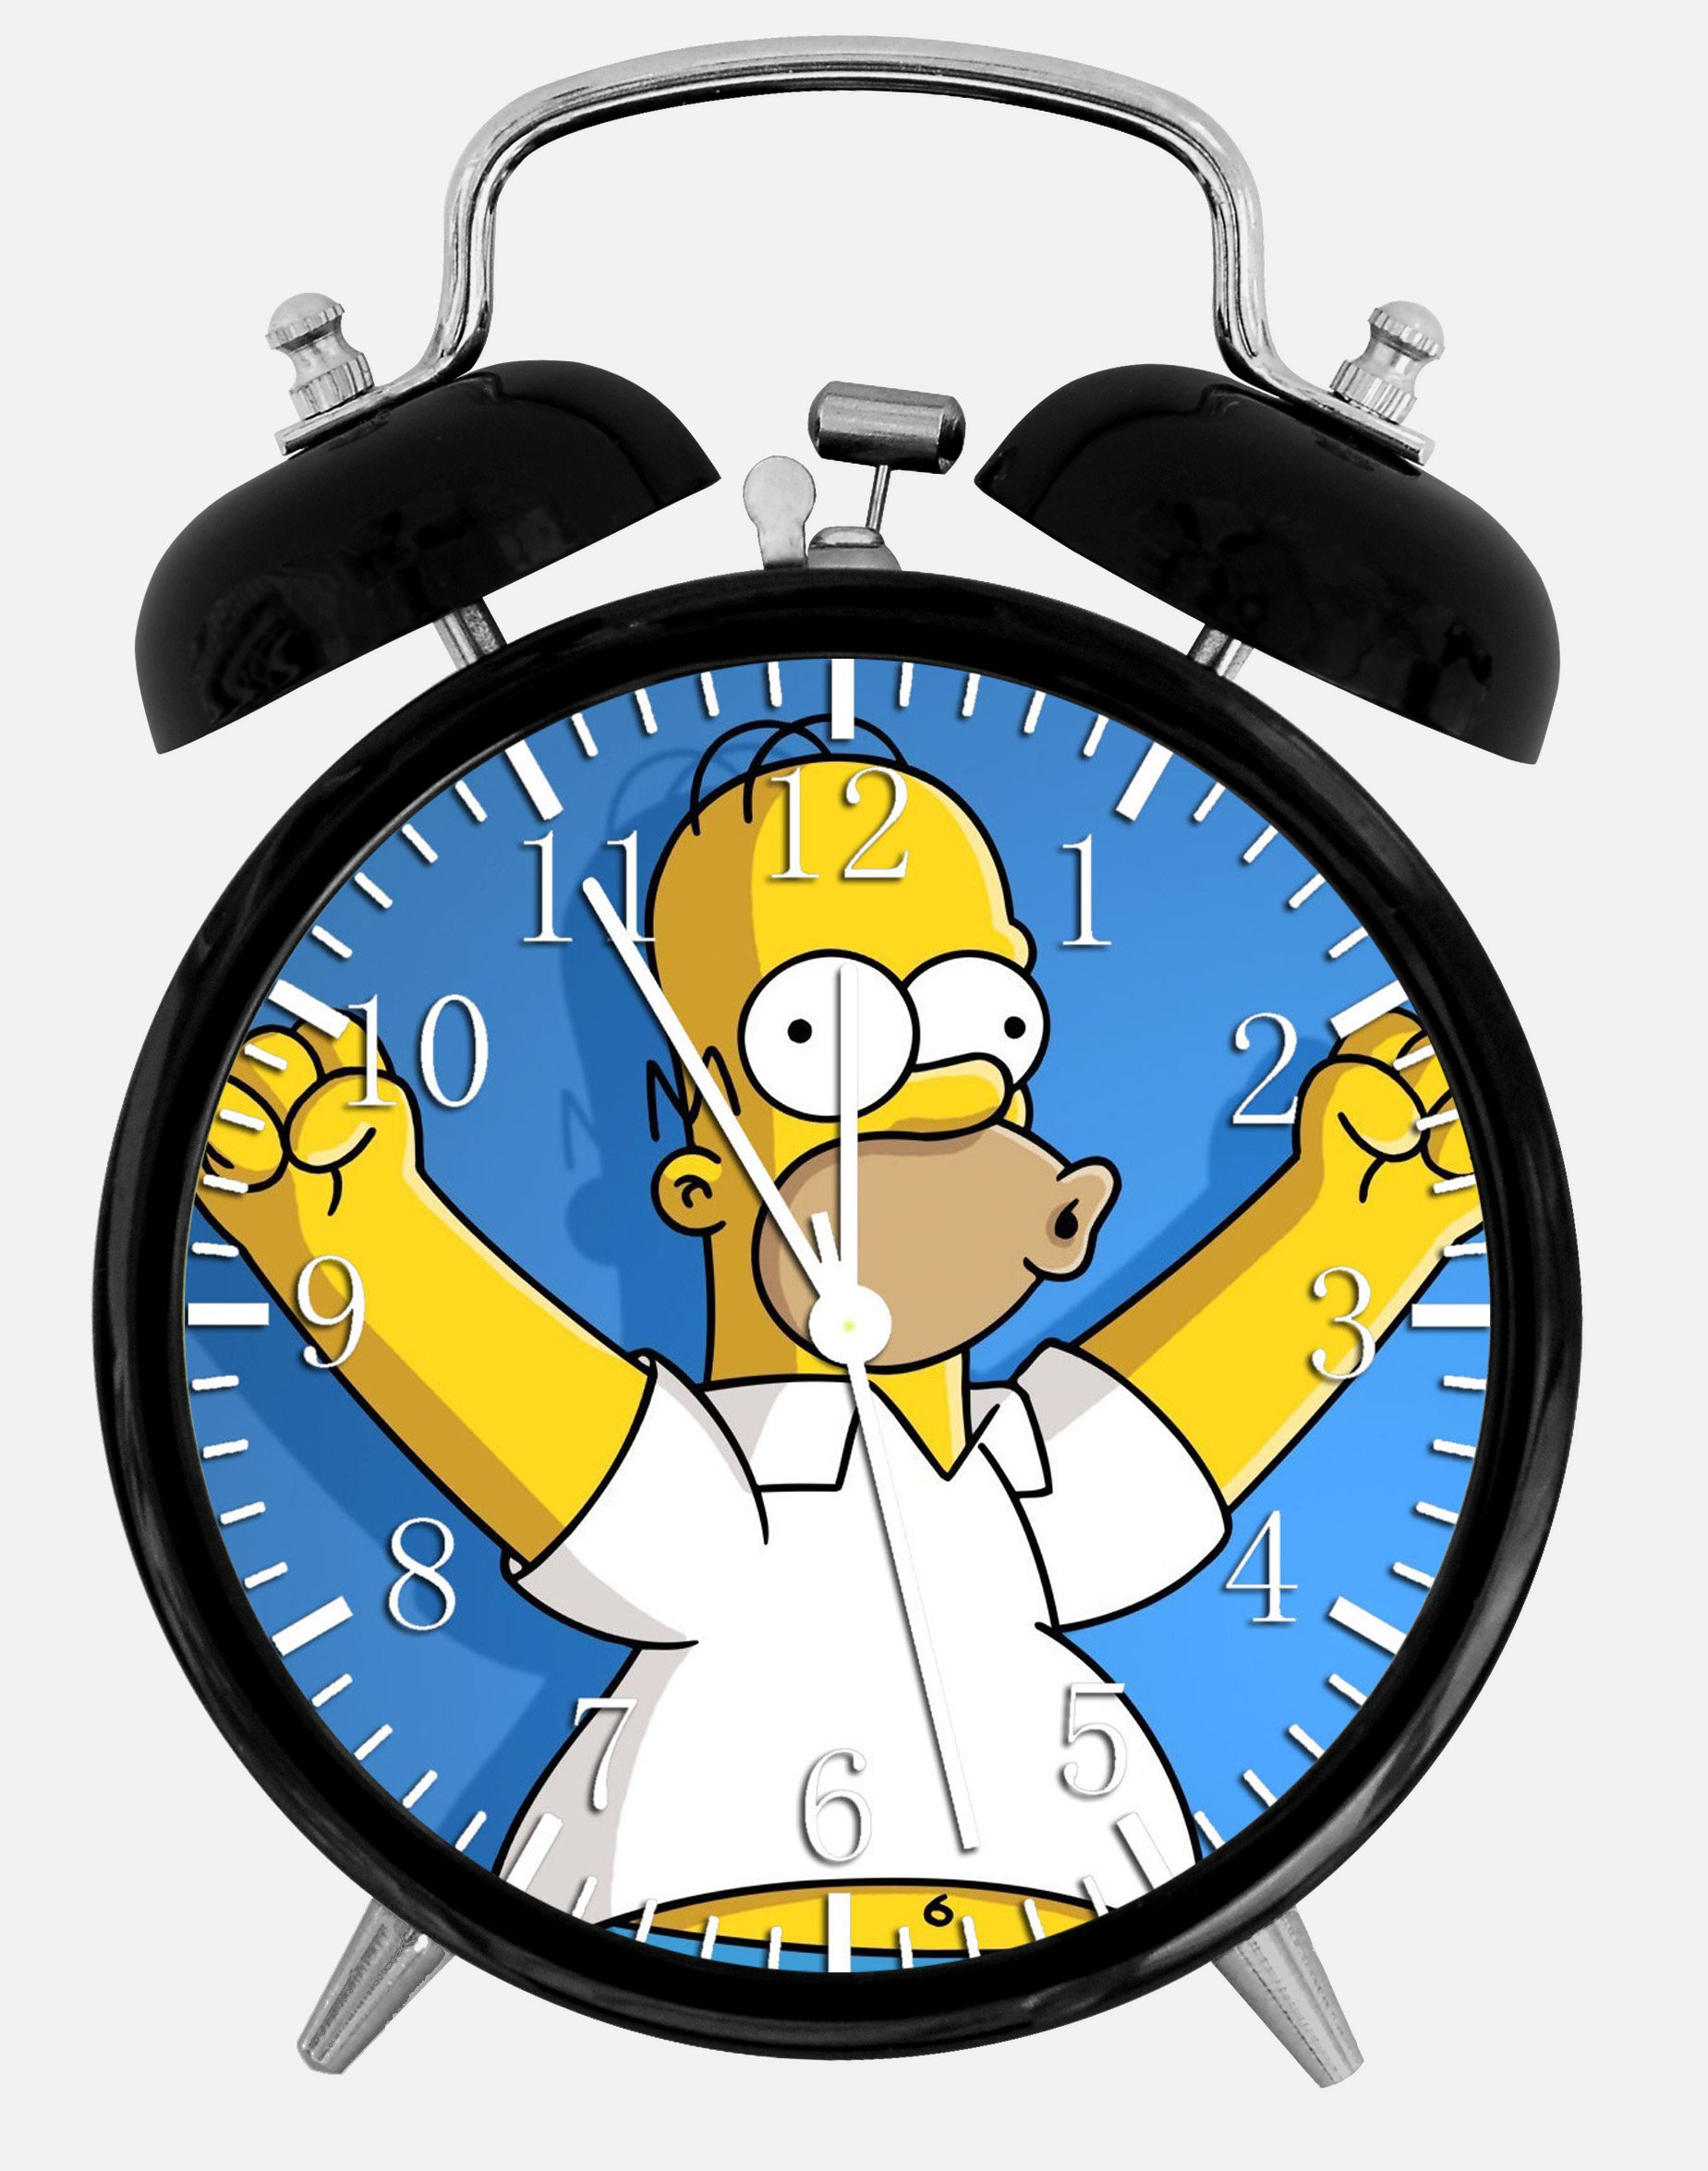 Simpsons Alarm Desk Clock 3.75'' Home Office Decor Z60 Nice For Gifts